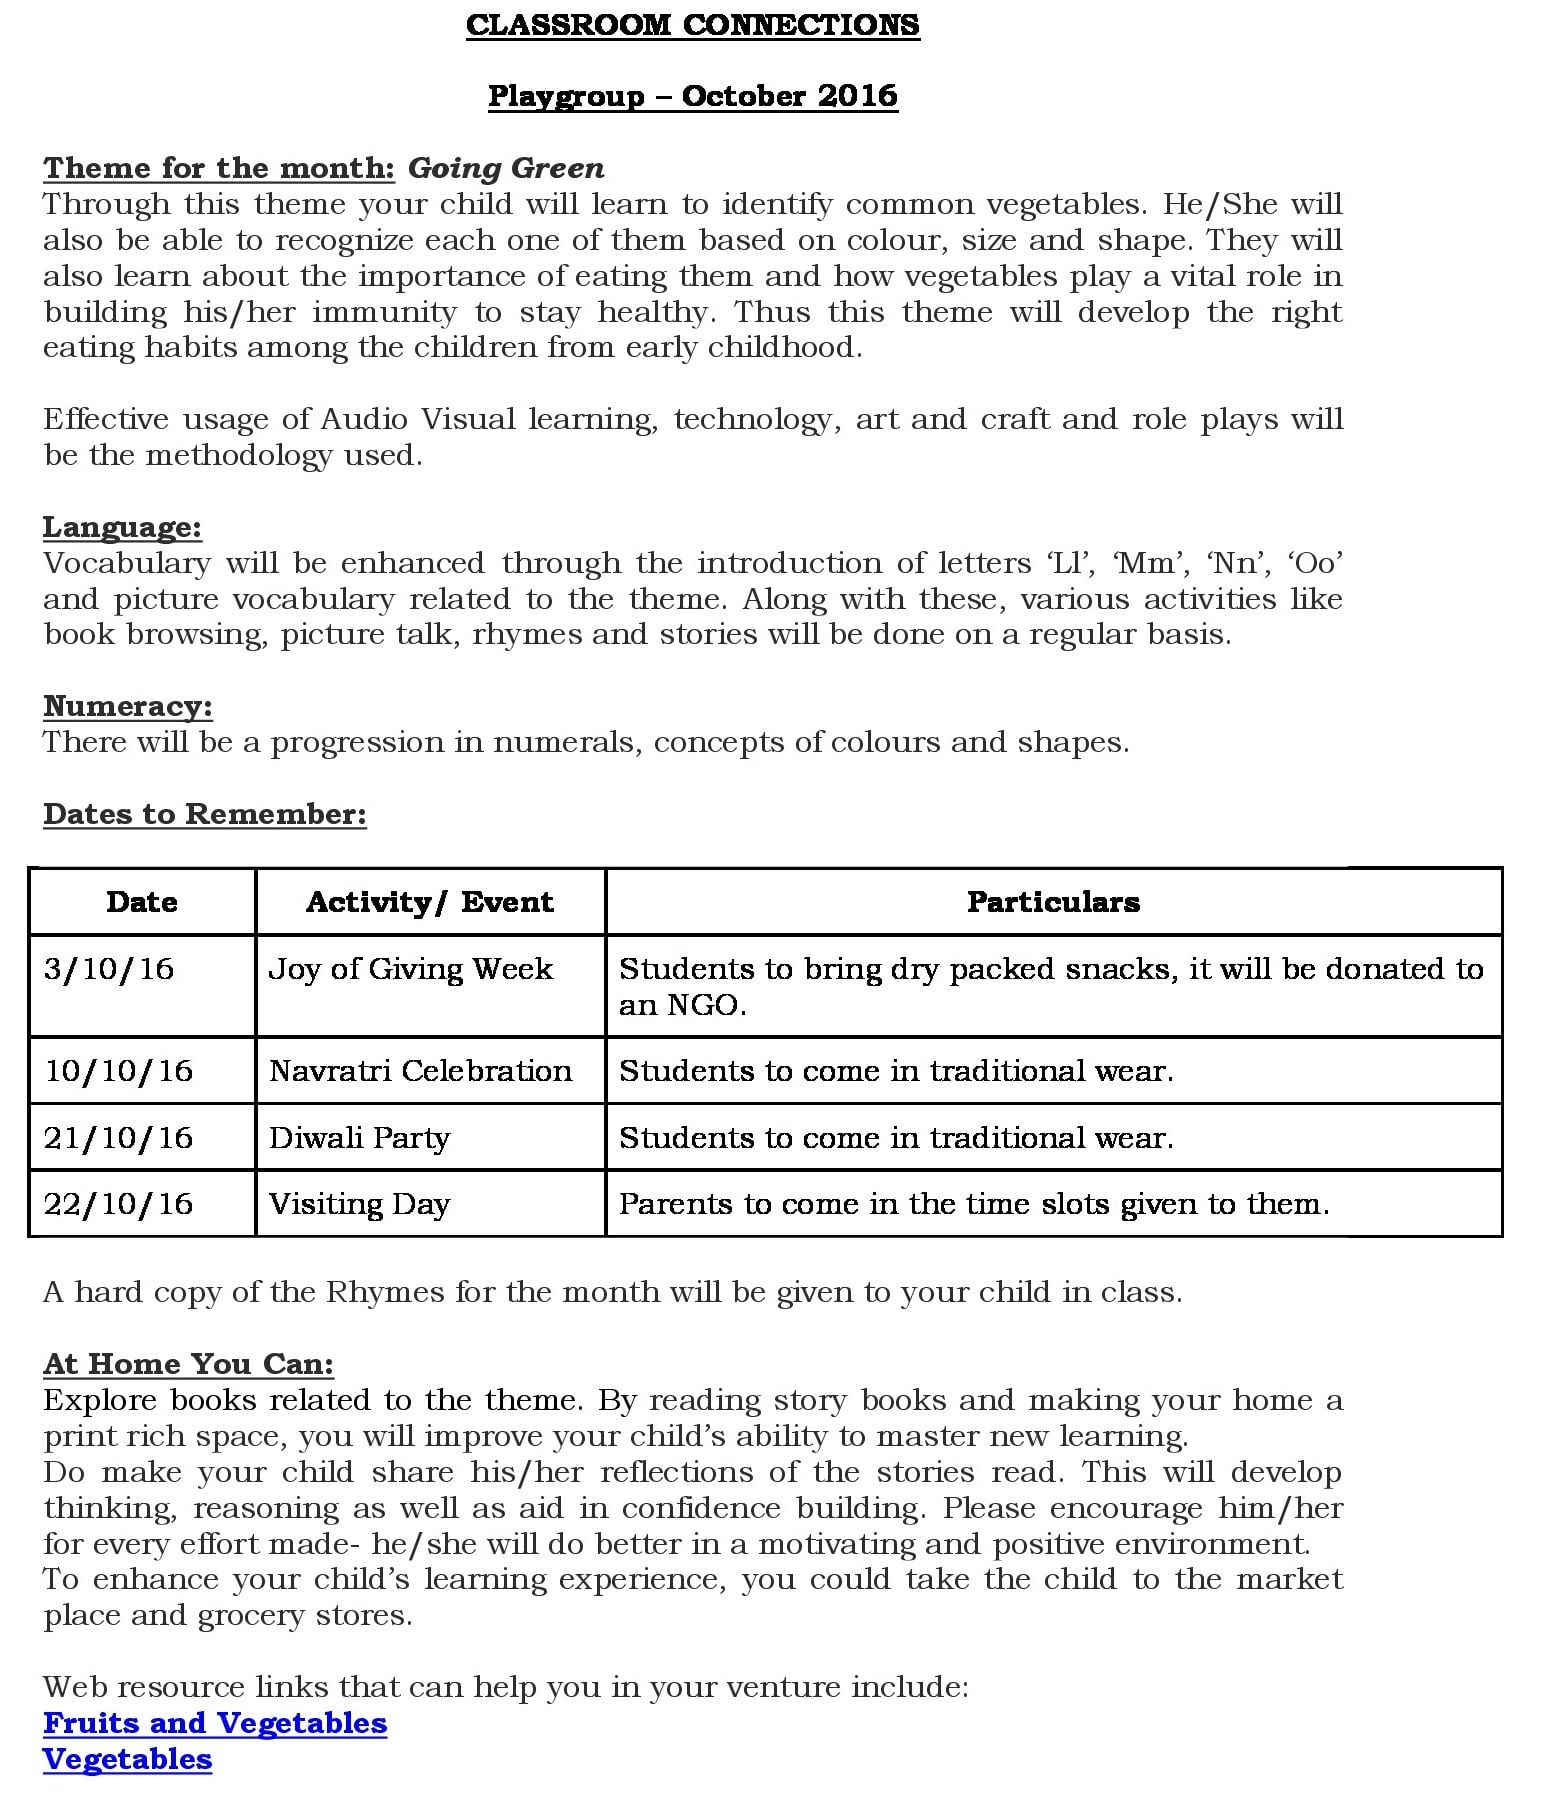 unit 5 classroom connections